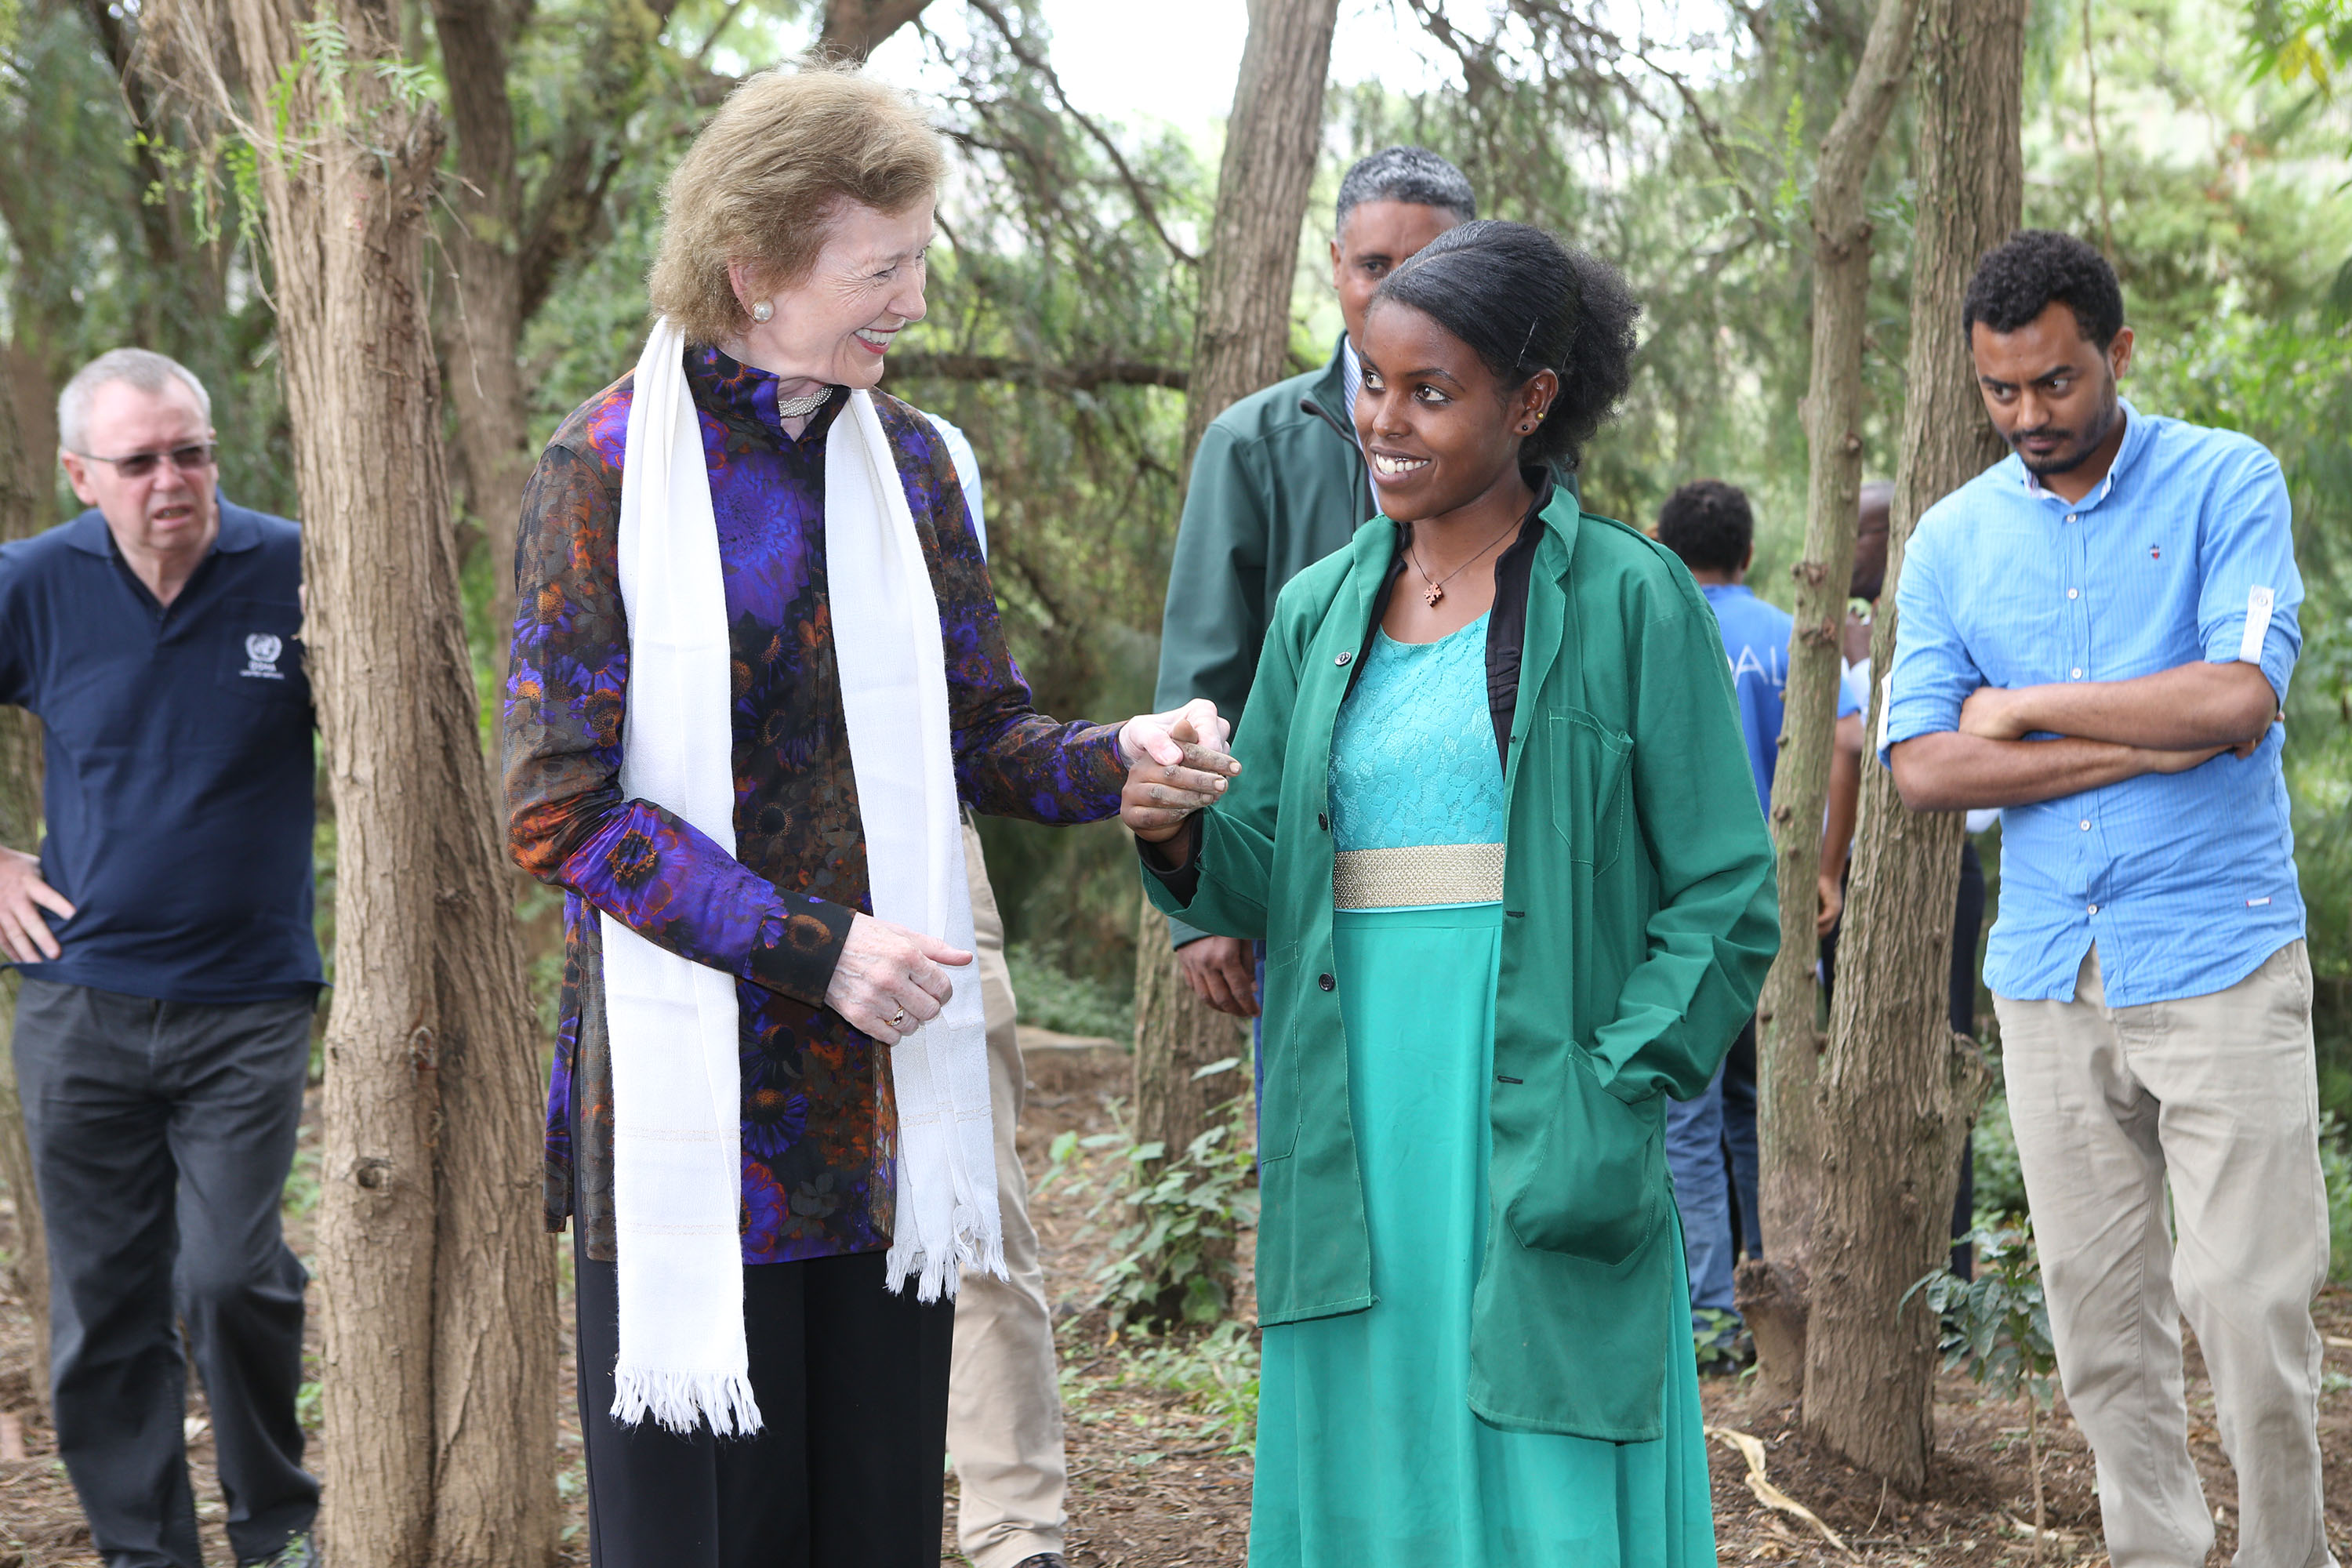 67/2016.   The UN Special Envoy for El Nino and Climate Mary Robinson visiting Ethiopia where she visited the Irish Aid program, the Integrated WatershedManagement Programme )where she planted a tree), the Concern Worldwide Ethiopia's CMAM(Community Management of Acute Malnutrition) programme and the Women's Cooperative Grain Bank programme.  Our photograph shows  (With Compliments)  Photograph Liam Burke/Press 22